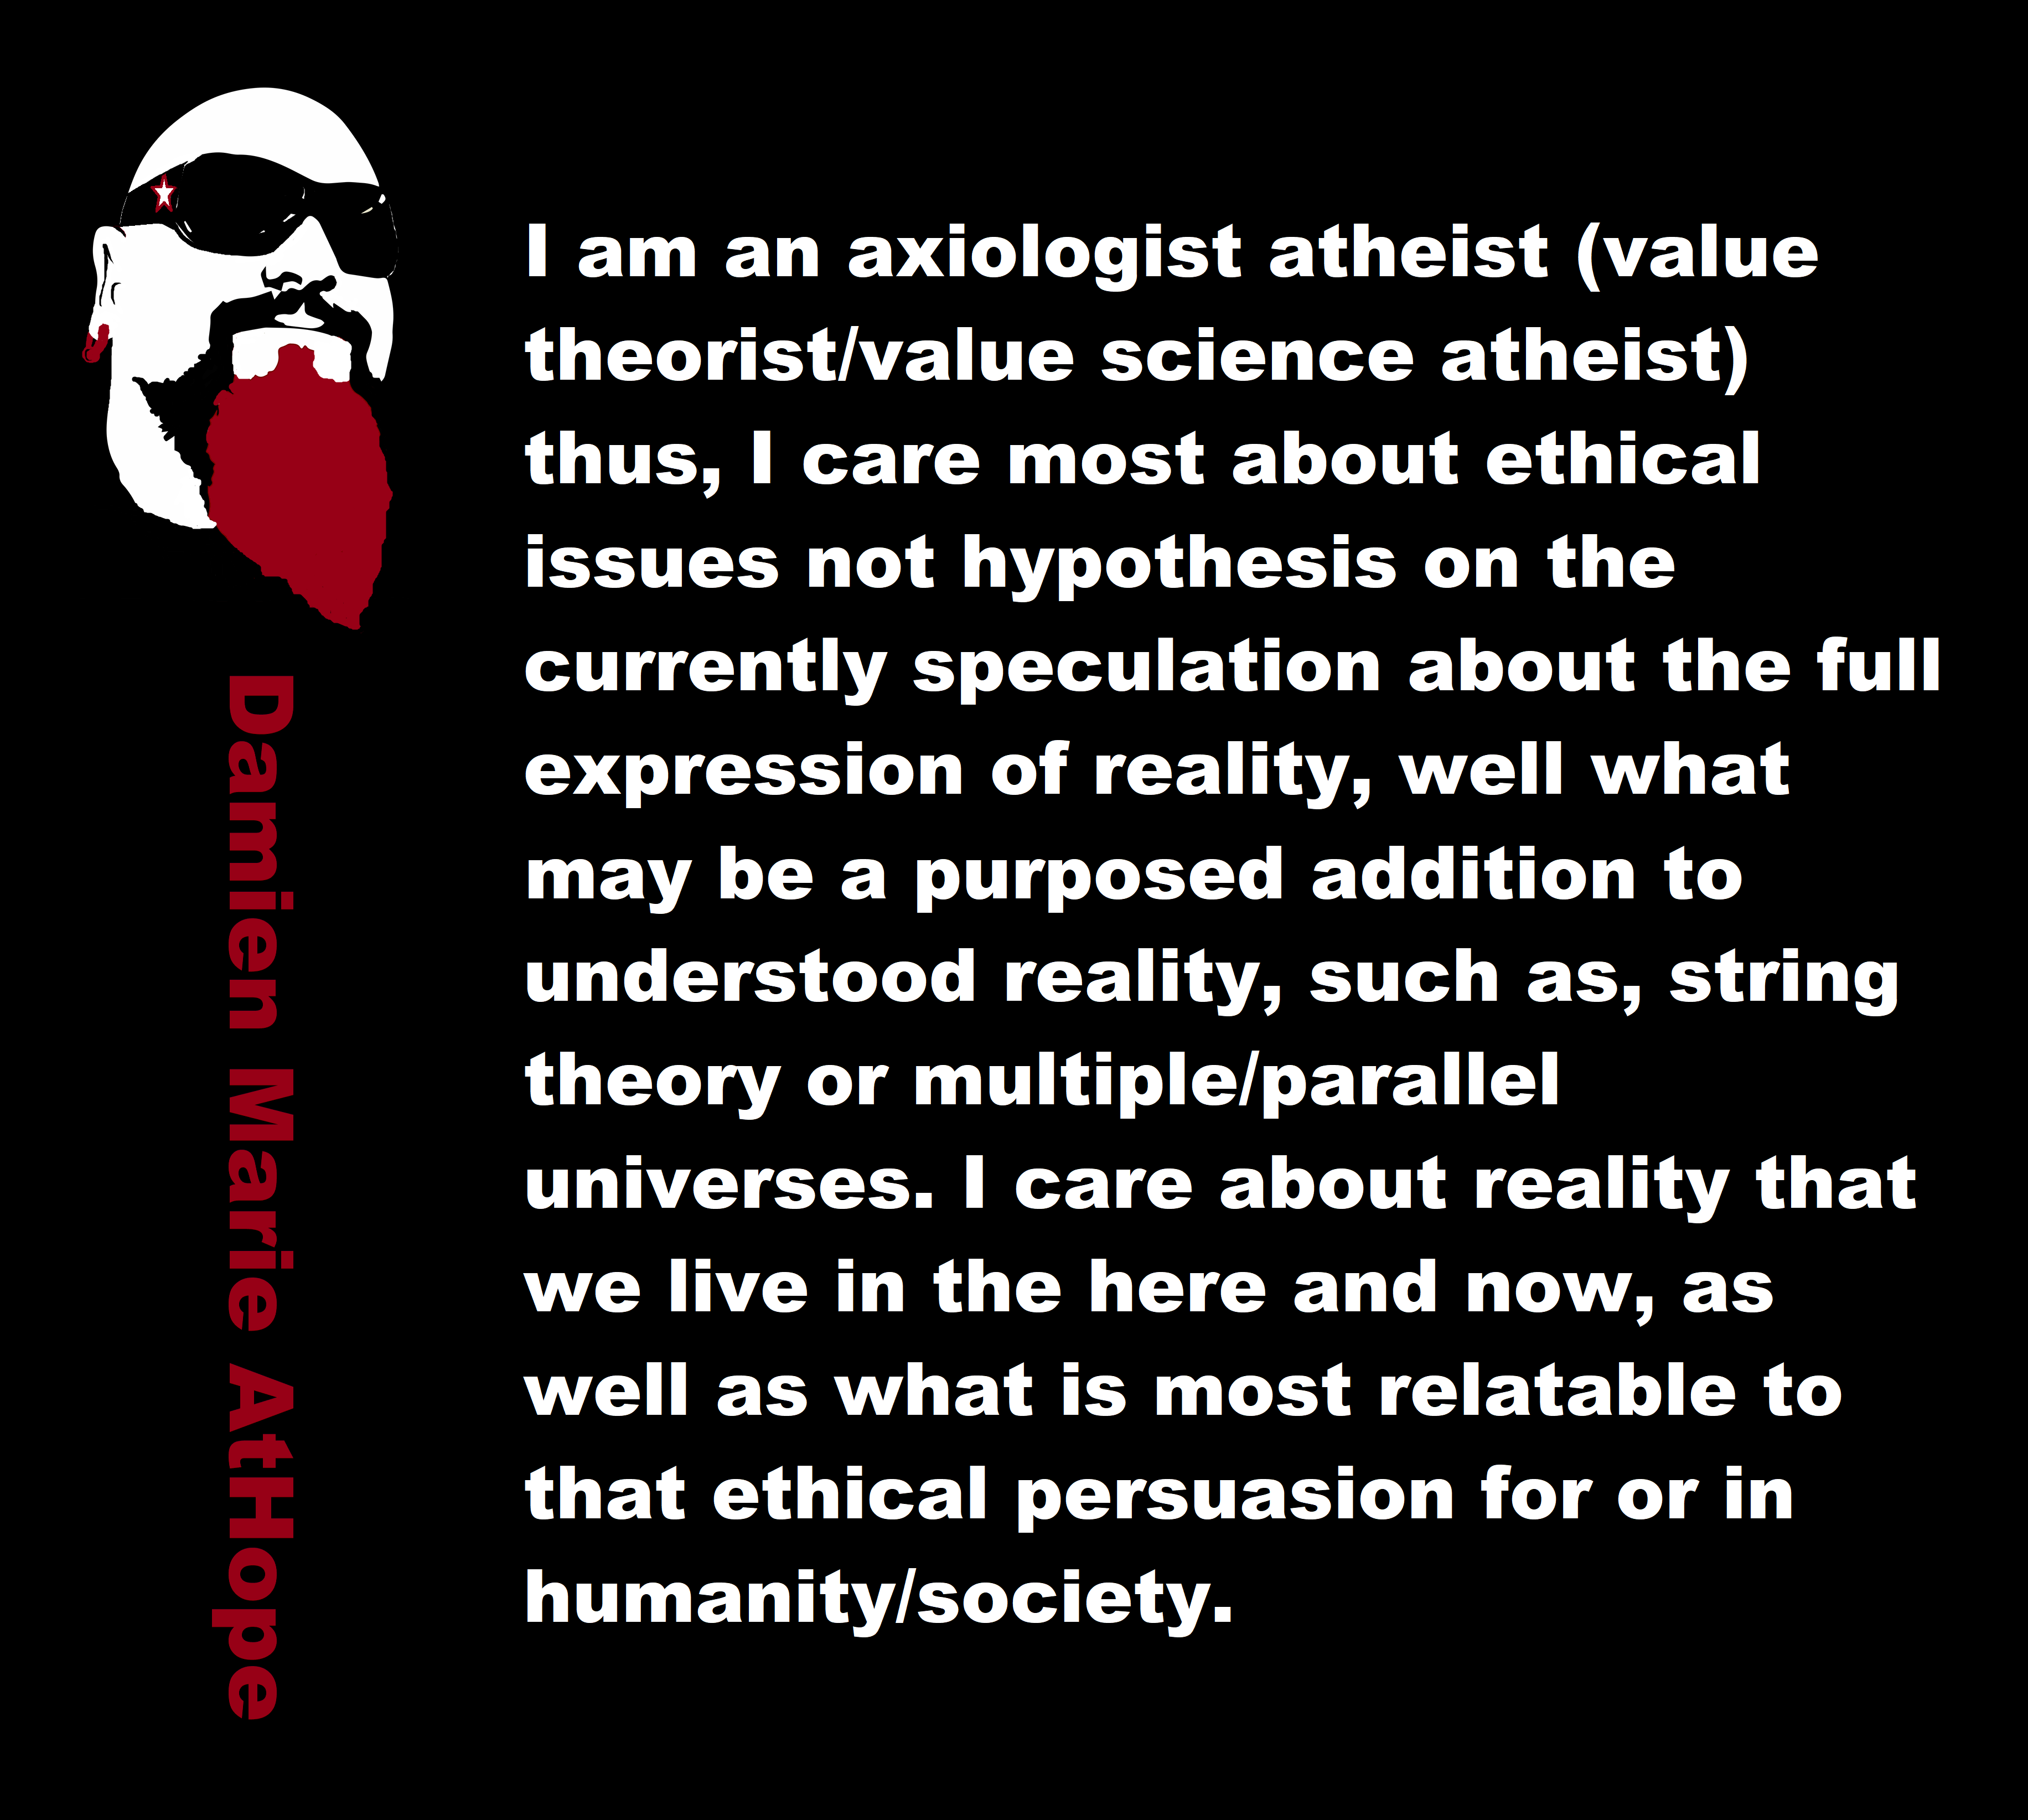 I am an axiological atheist with a rationalist persuasion who damien marie athope chats with matt dillahunty on atheism and philosophy biocorpaavc